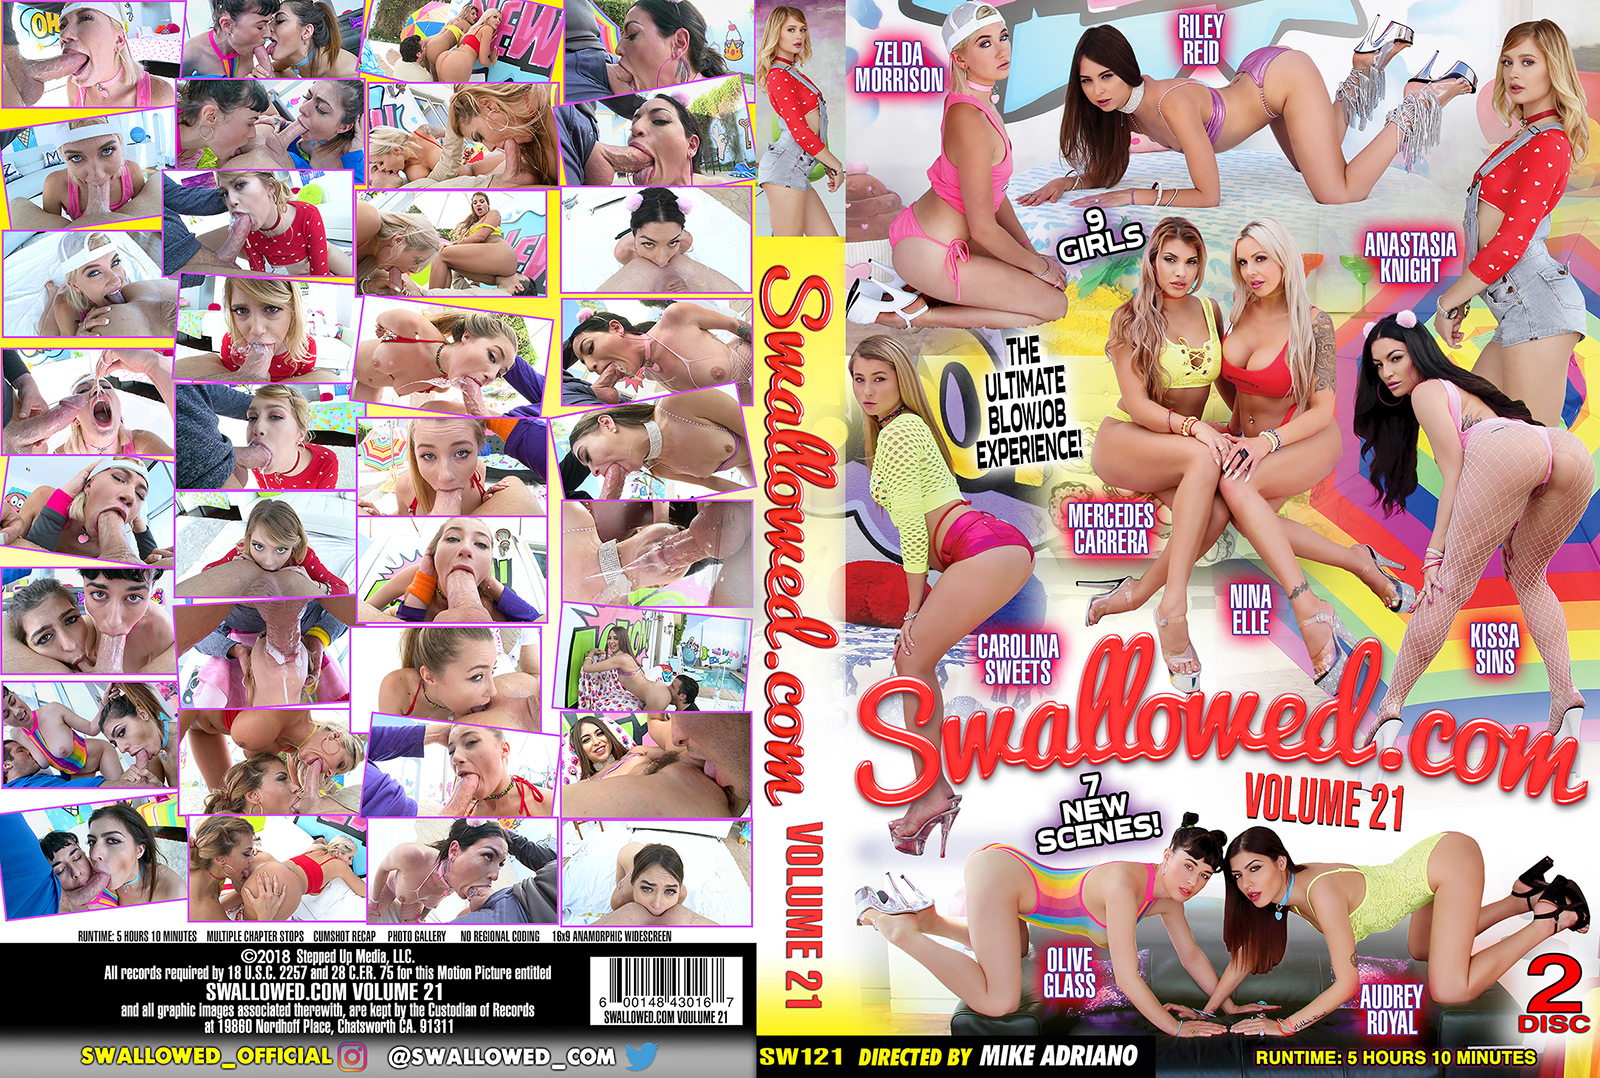 Swallowed Vol 21 DVD